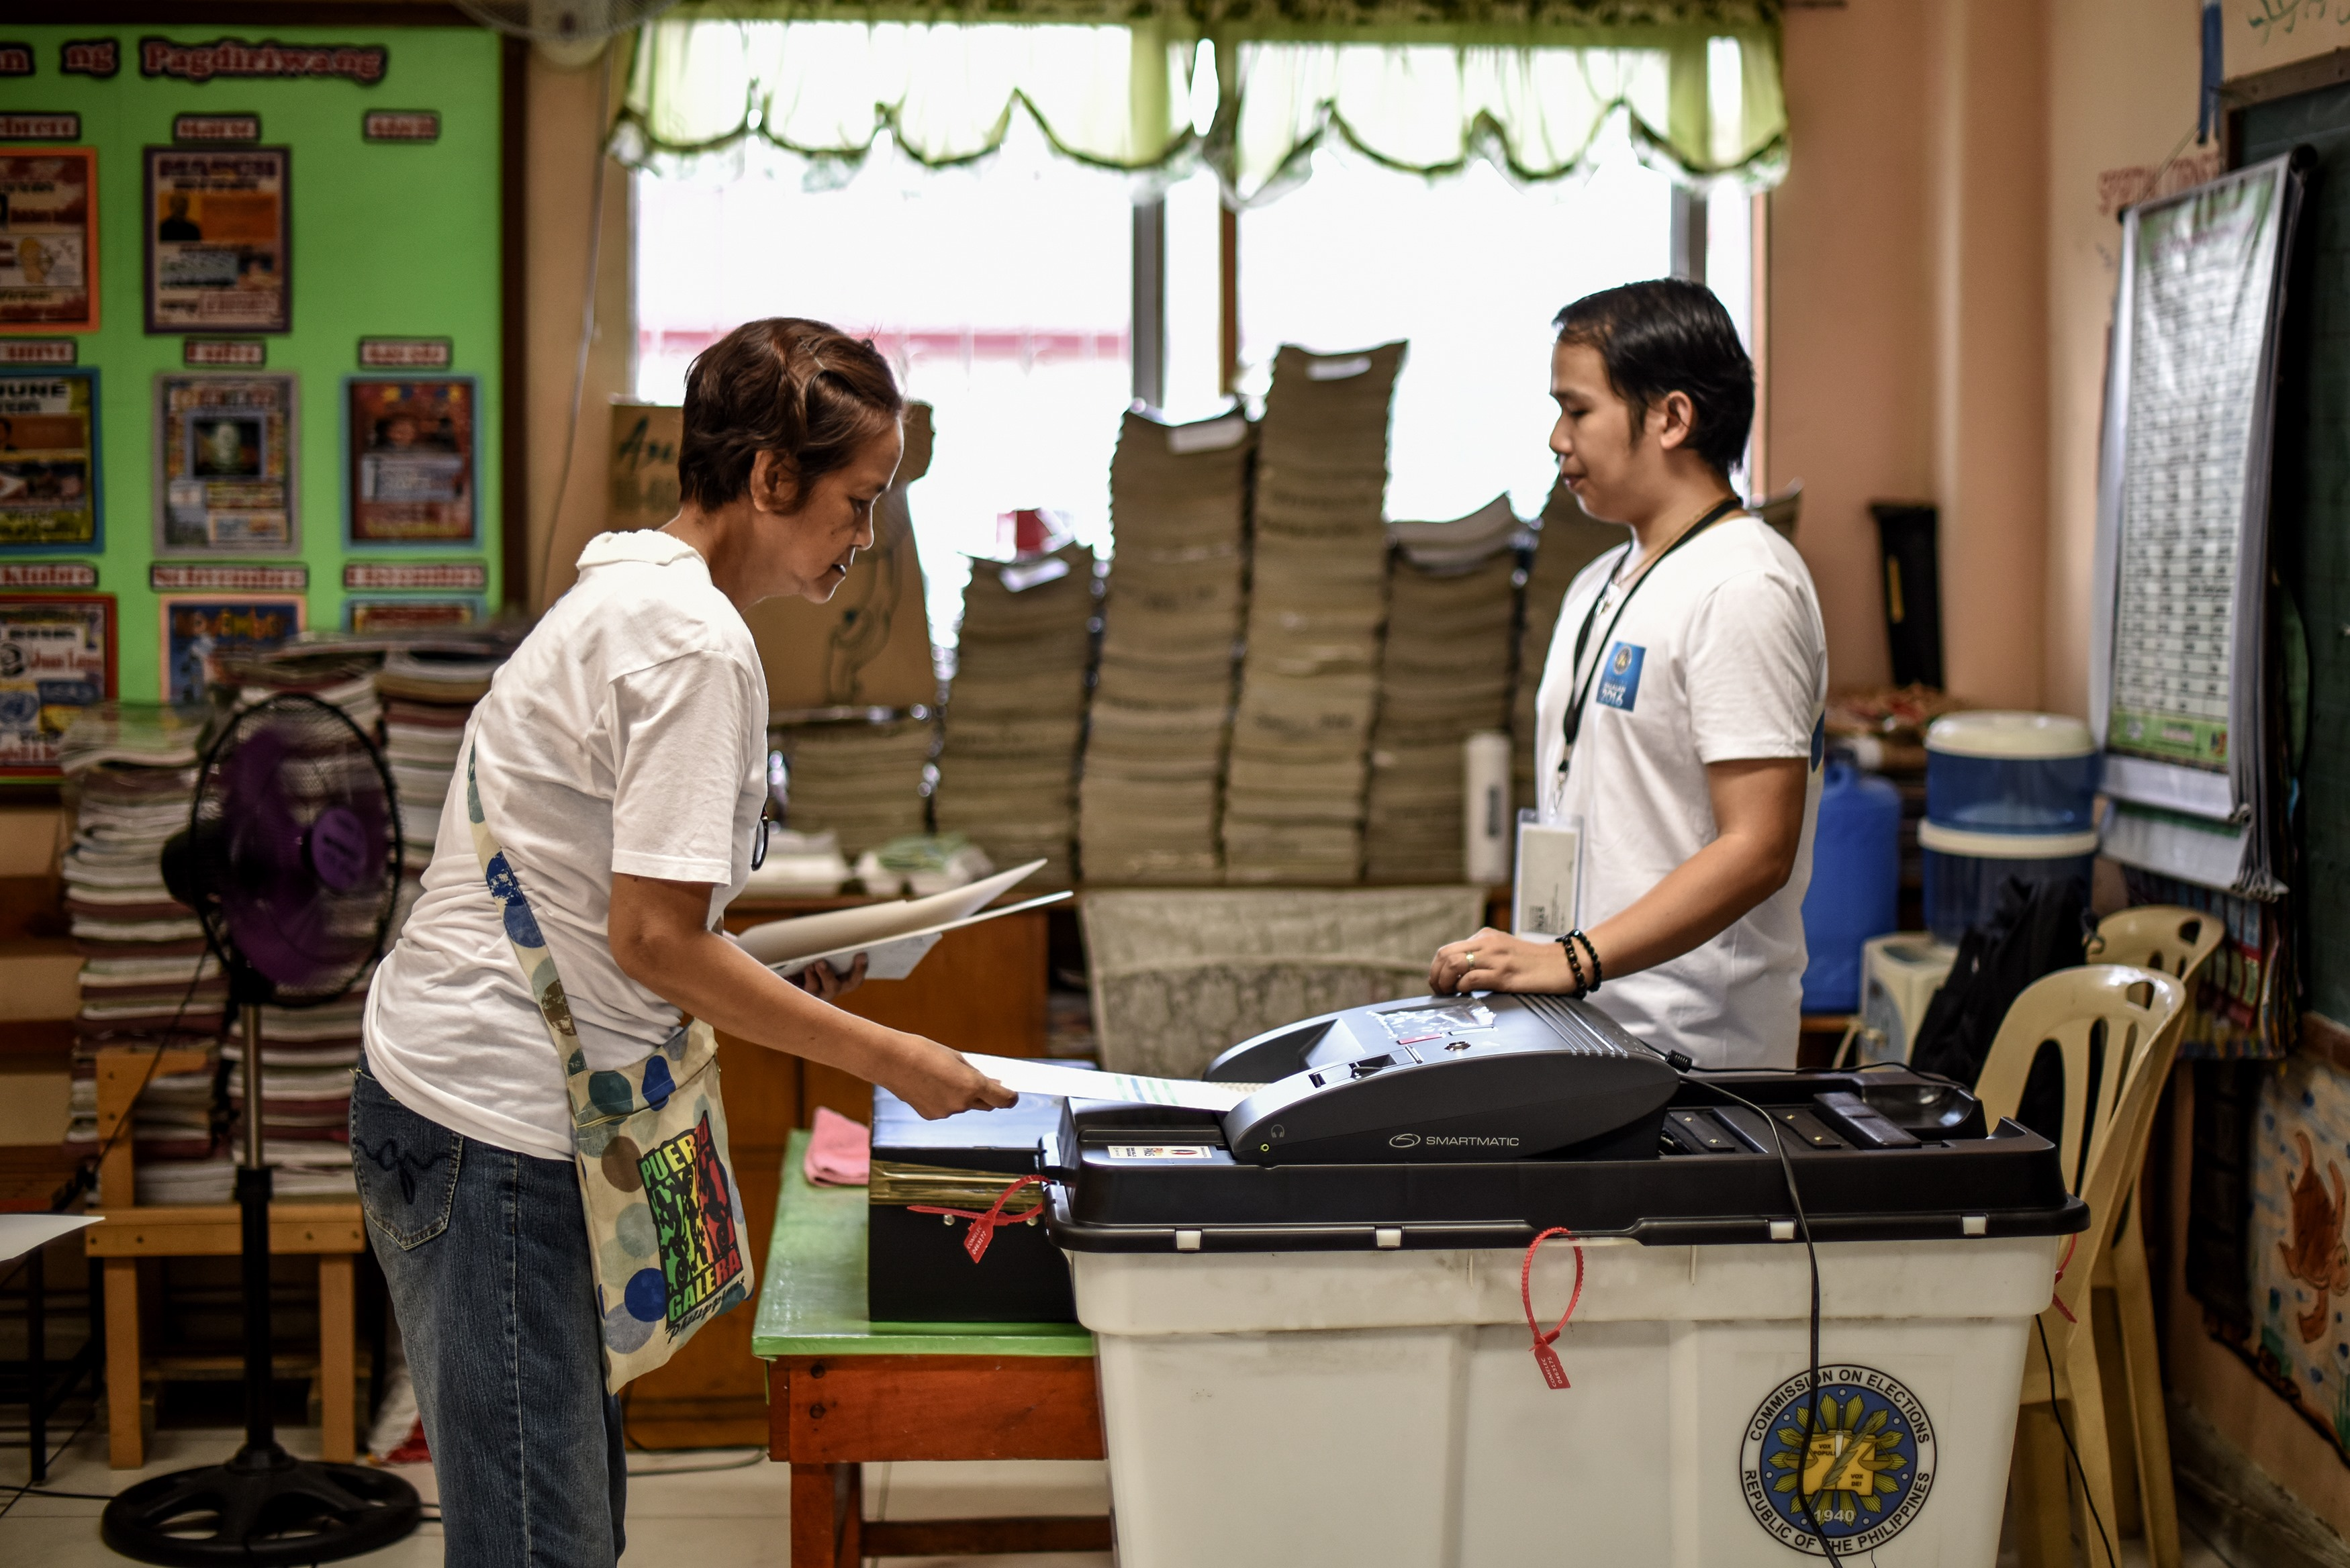 An elderly Filipino woman (L) places her ballot paper into a vote counting machine during the presidential and vice presidential elections at a polling center in Manila on May 9, 2016.  Voting was underway in the Philippines on May 9 to elect a new president, with anti-establishment firebrand Rodrigo Duterte the shock favourite after an incendiary campaign in which he vowed to butcher criminals. / AFP PHOTO / MOHD RASFAN